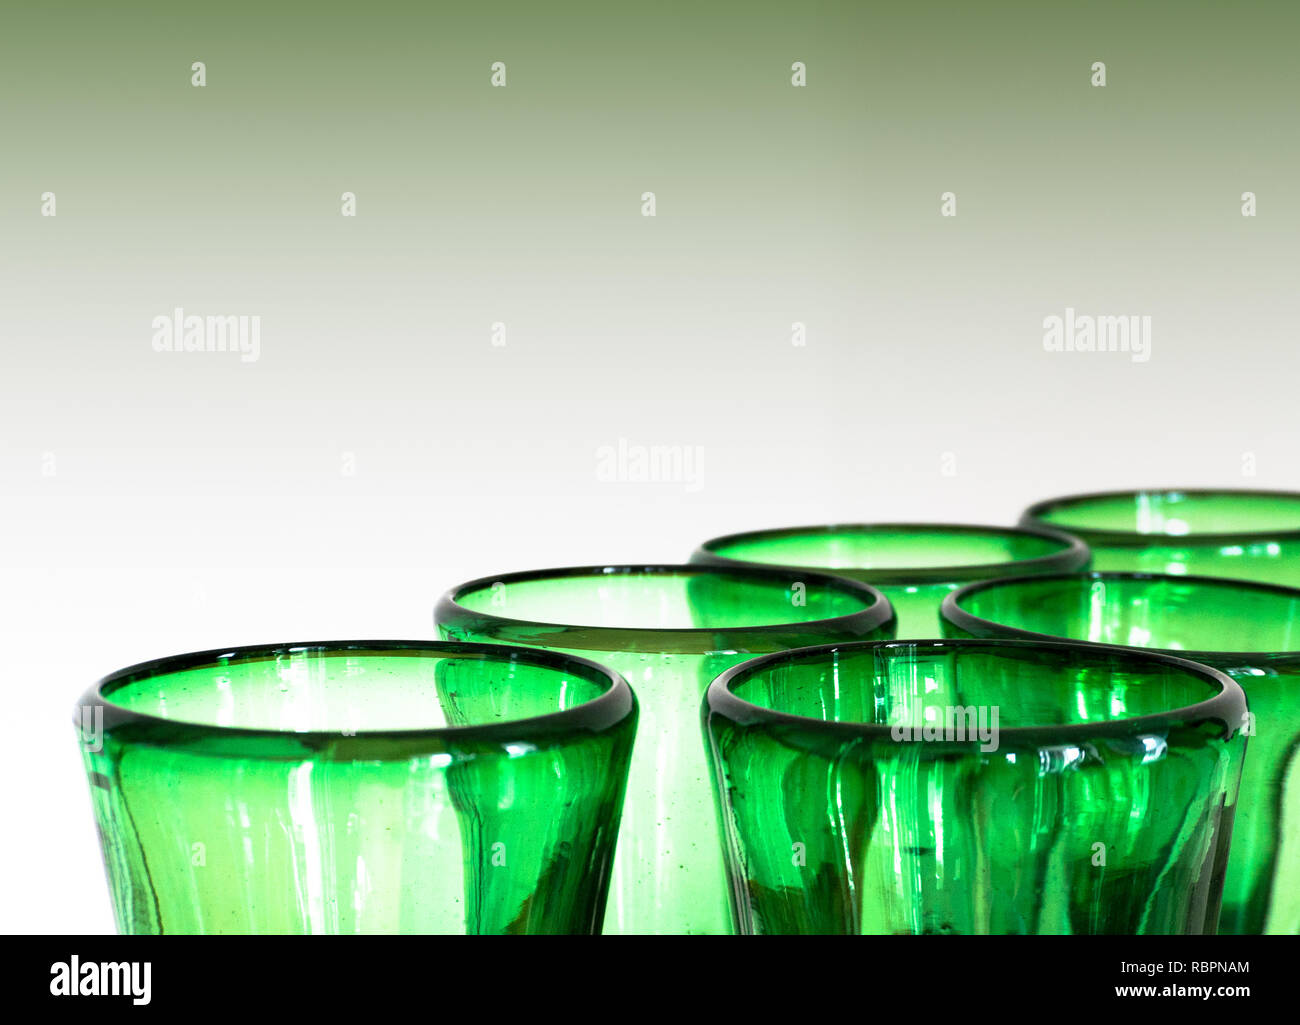 green glass designer wine glasses detail view abstract with copy space horizonal and green background - Stock Image